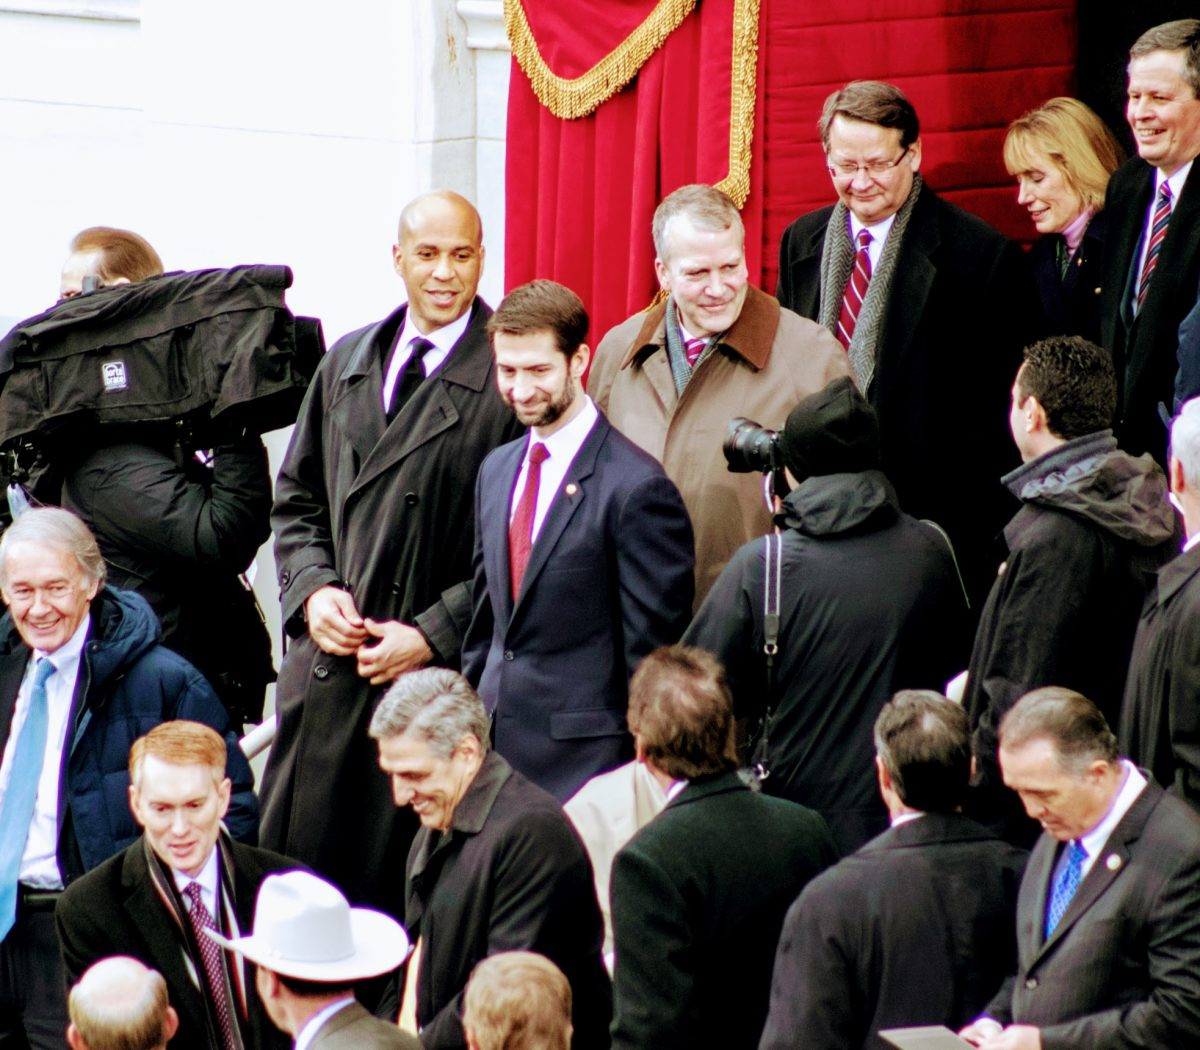 Members of Congress arrive to take their seats at the inauguration ceremony for the 45th president of the United States. /Photo by Shevry Lassiter